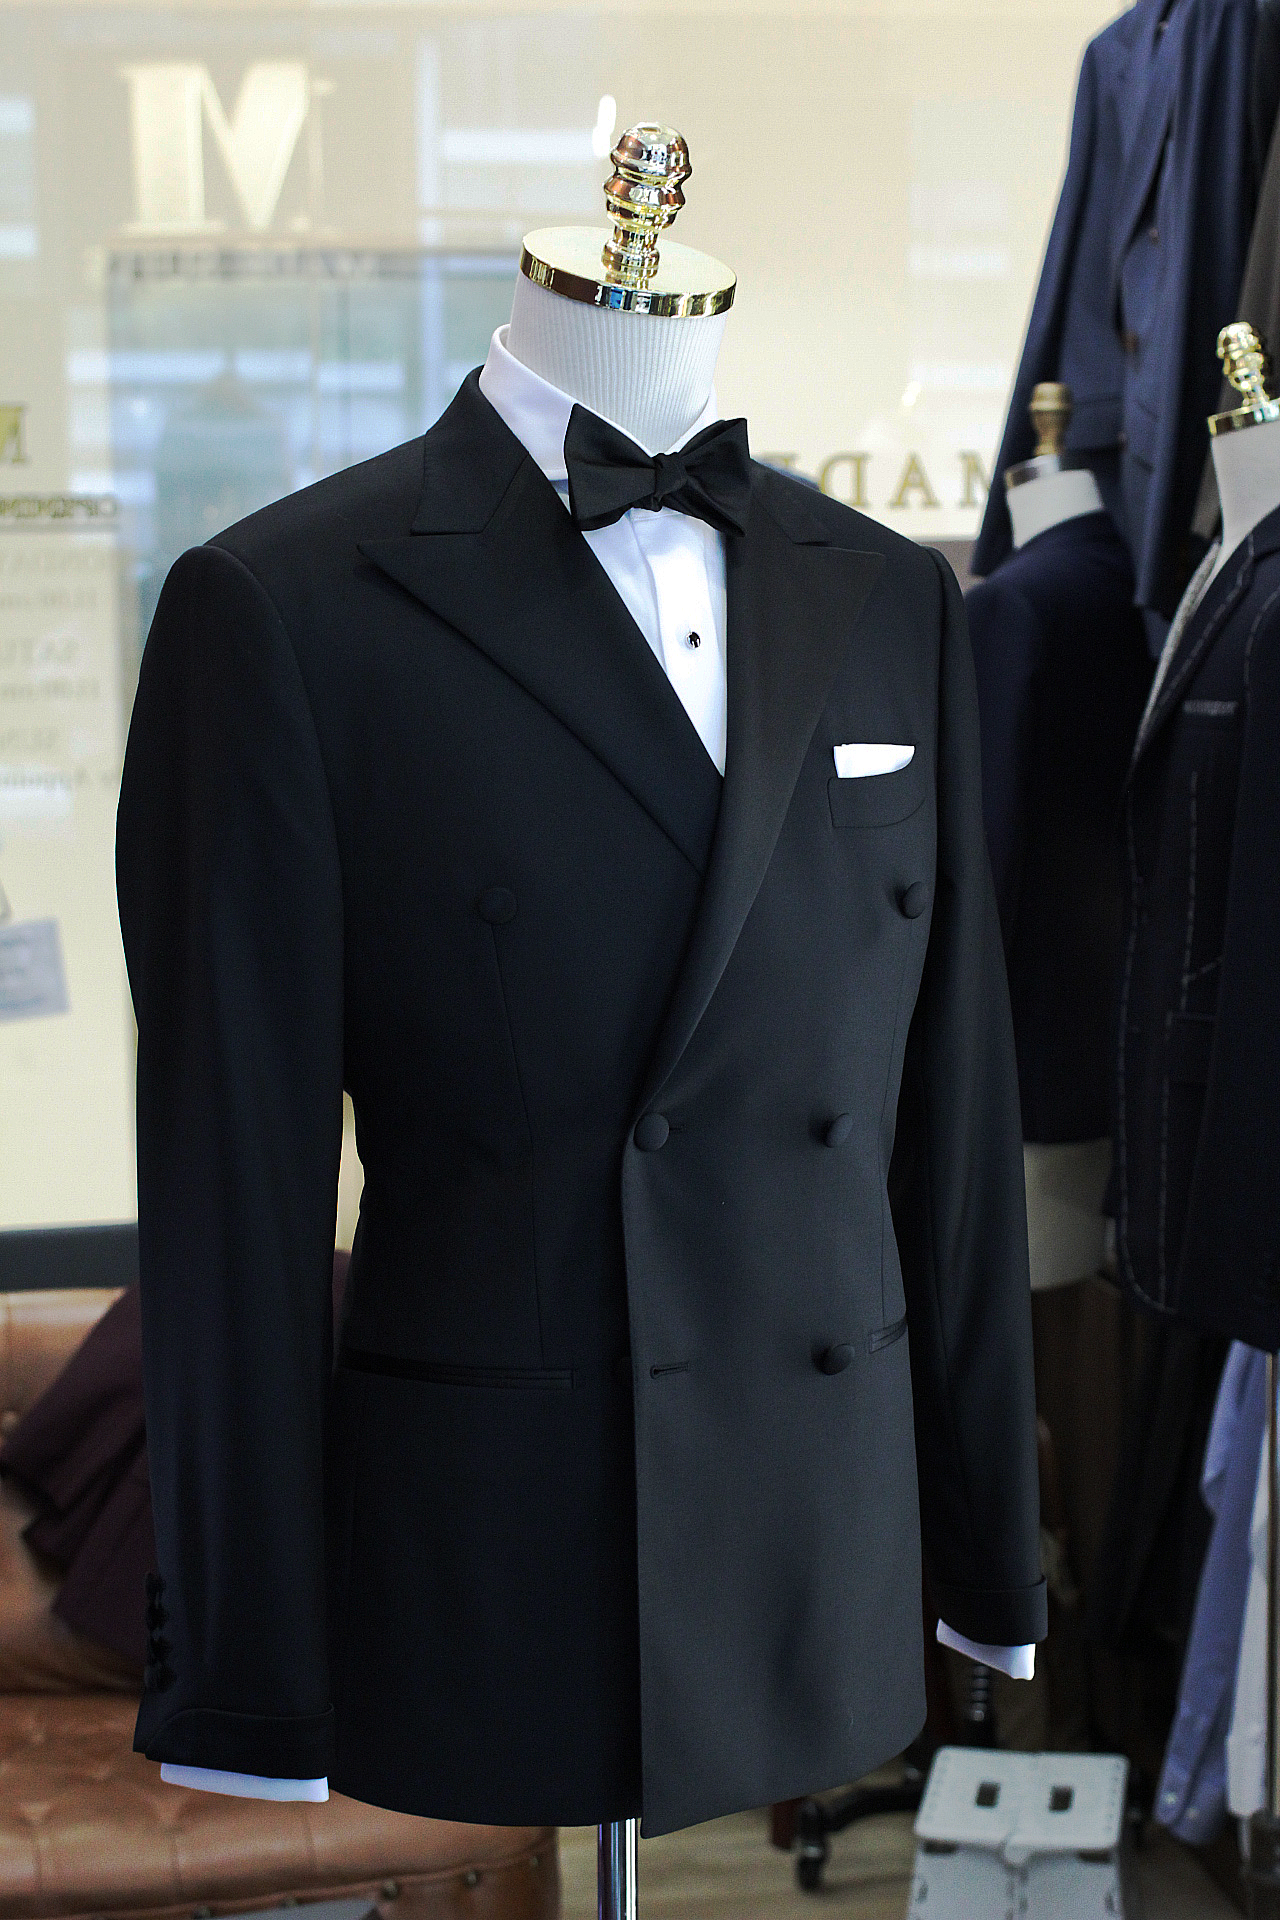 andie-chen-Made-Suits-Singapore-Tuxedo-double-breasted-suit1.JPG